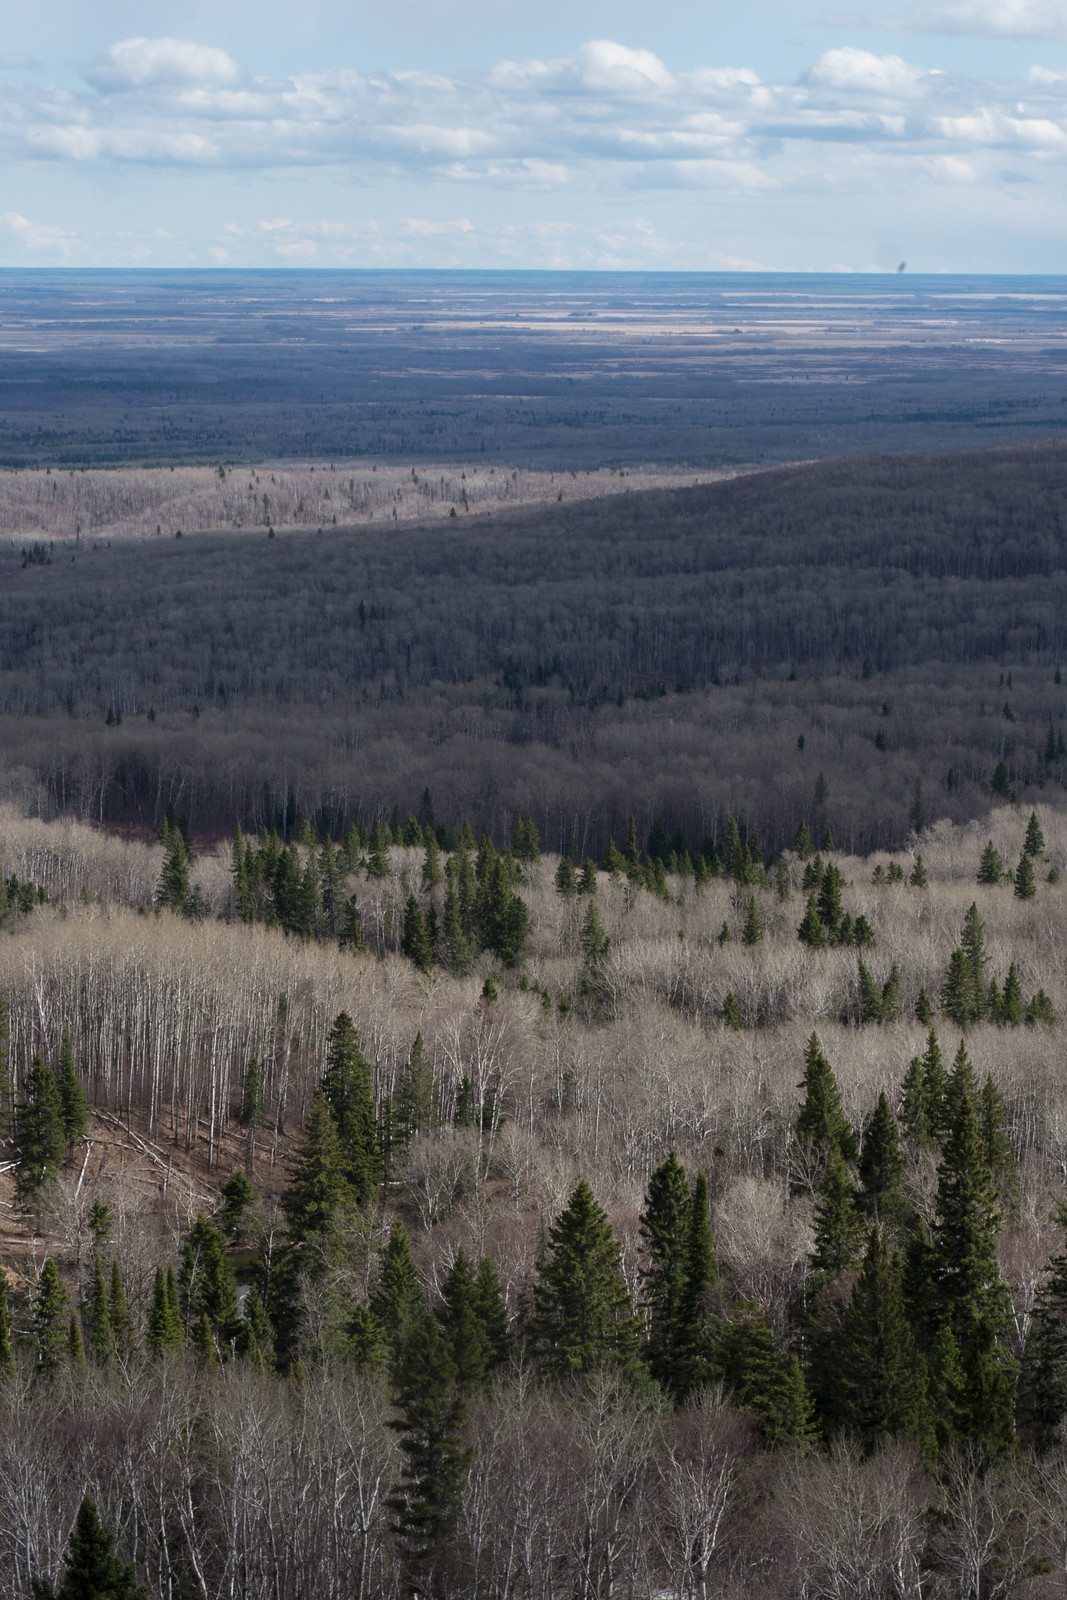 An expansive view of the Bell River valley leading down to the Manitoba Lowlands. The Duck Mountains' shadow can be seen 70 km away. (Goodson)